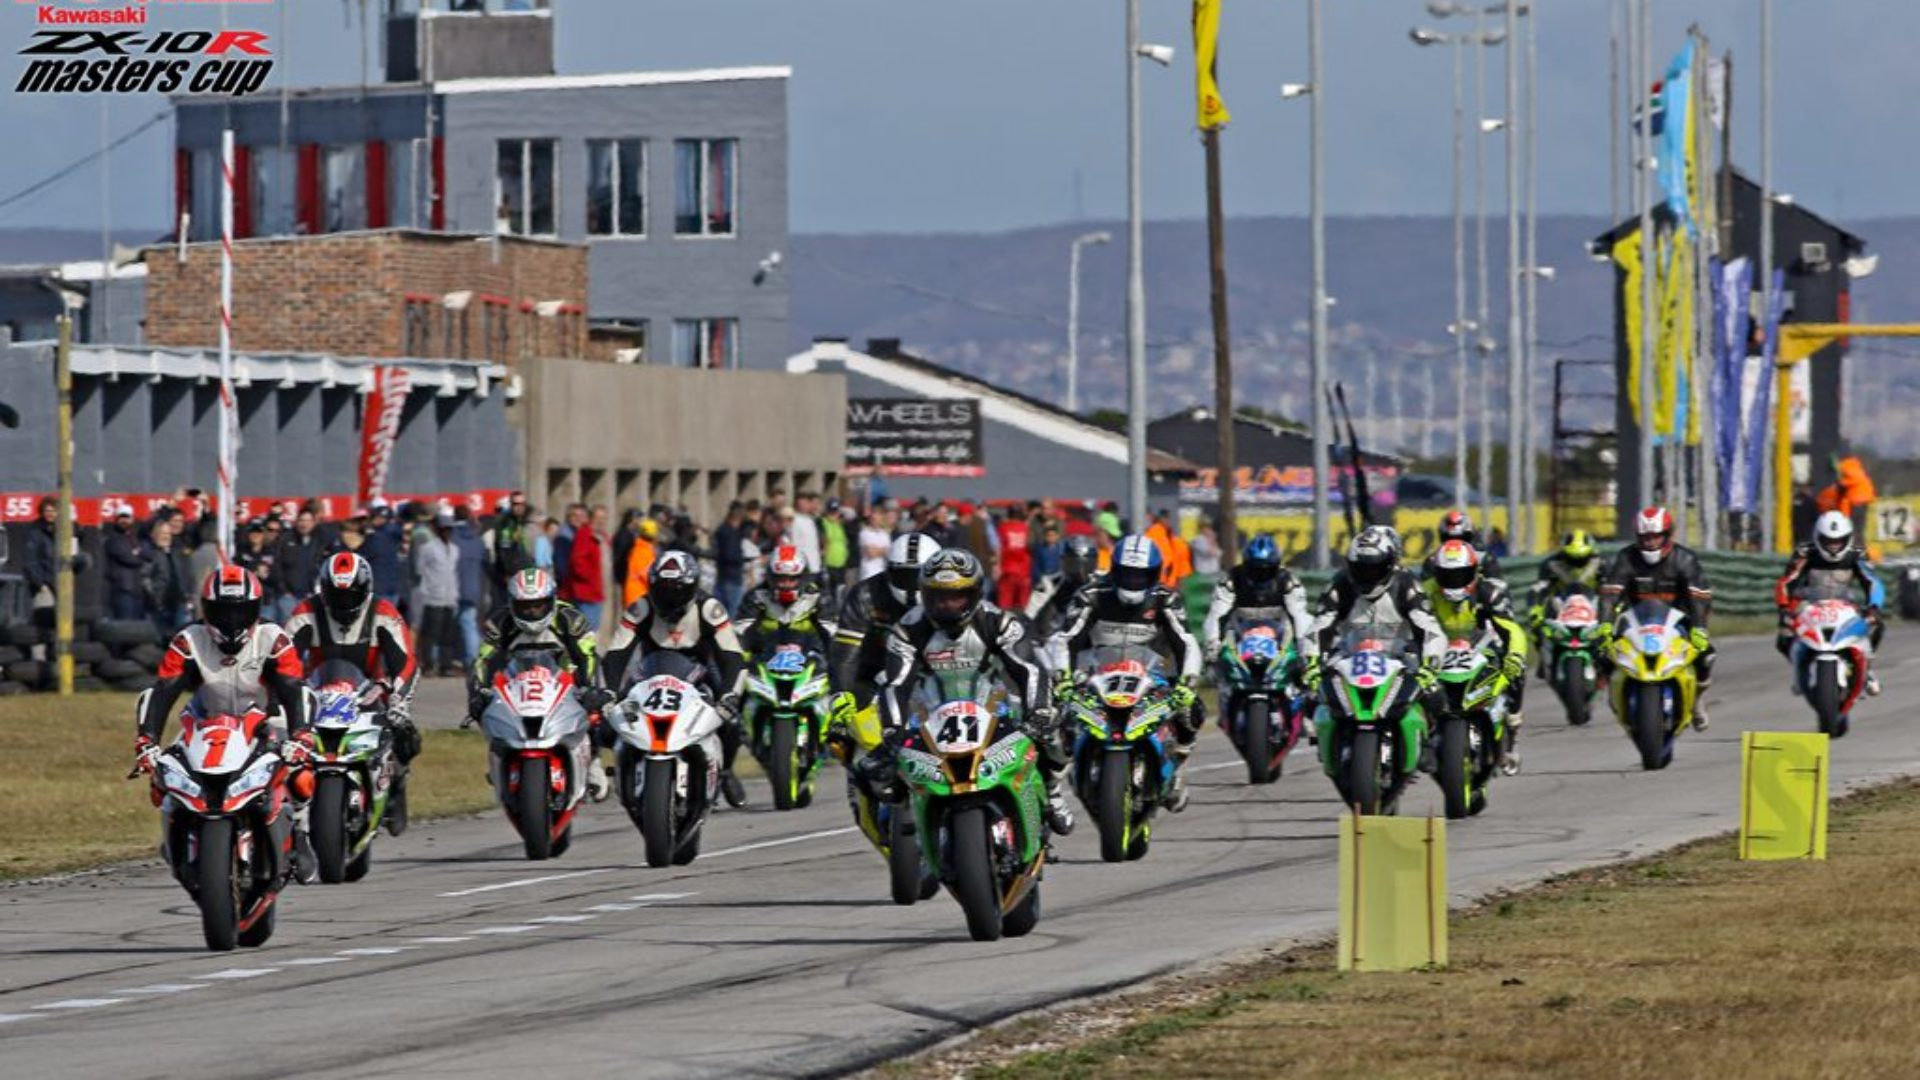 ZX10R Masters Cup